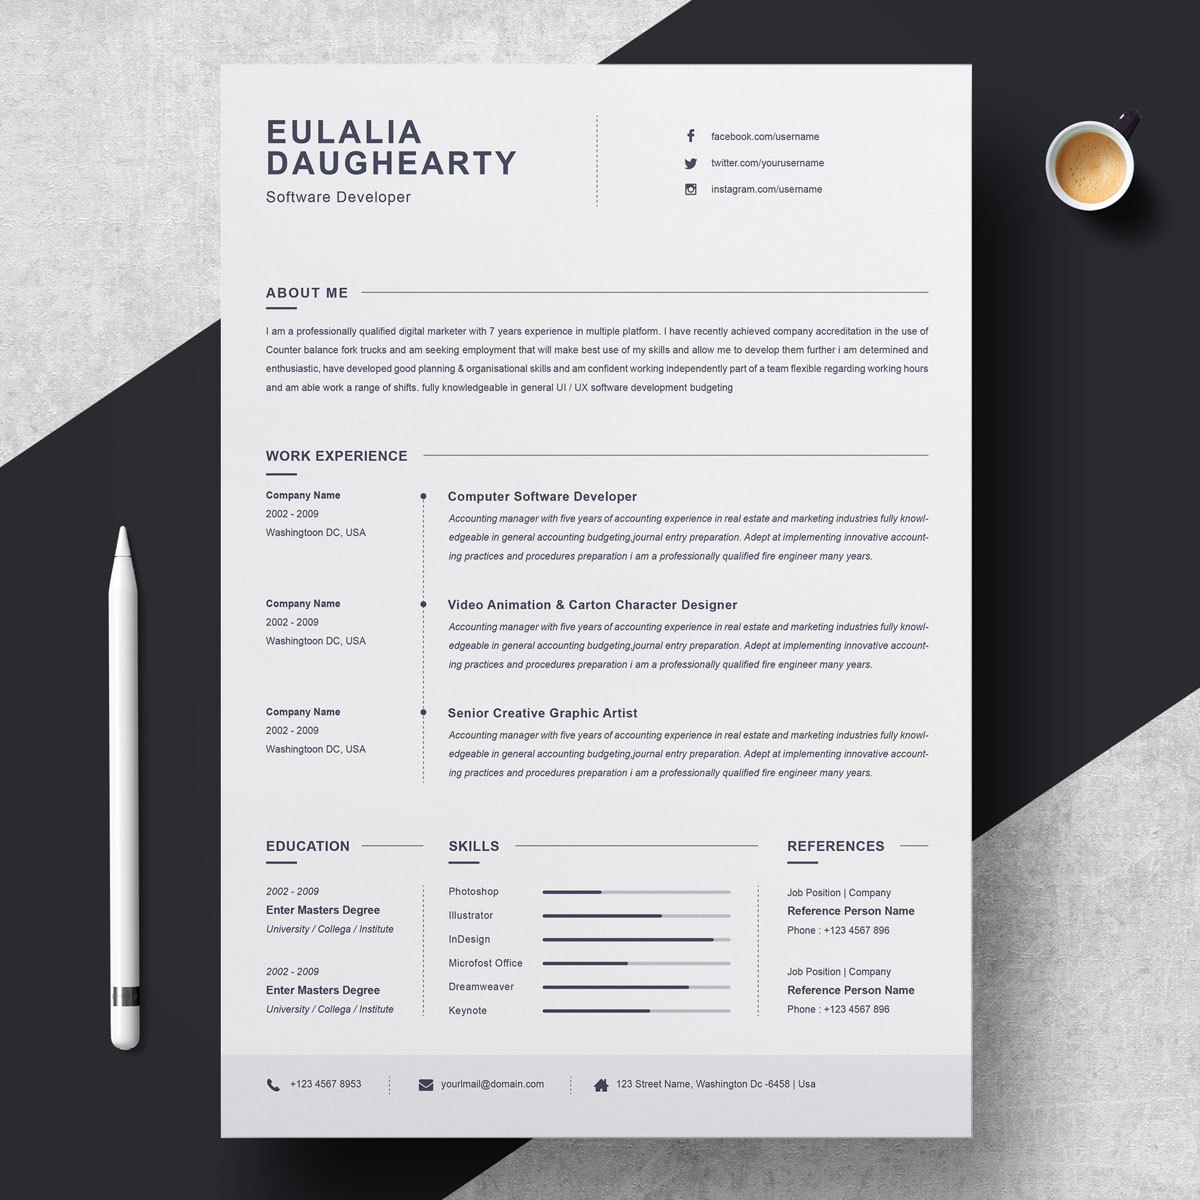 Eulalia Daughearty Resume Template